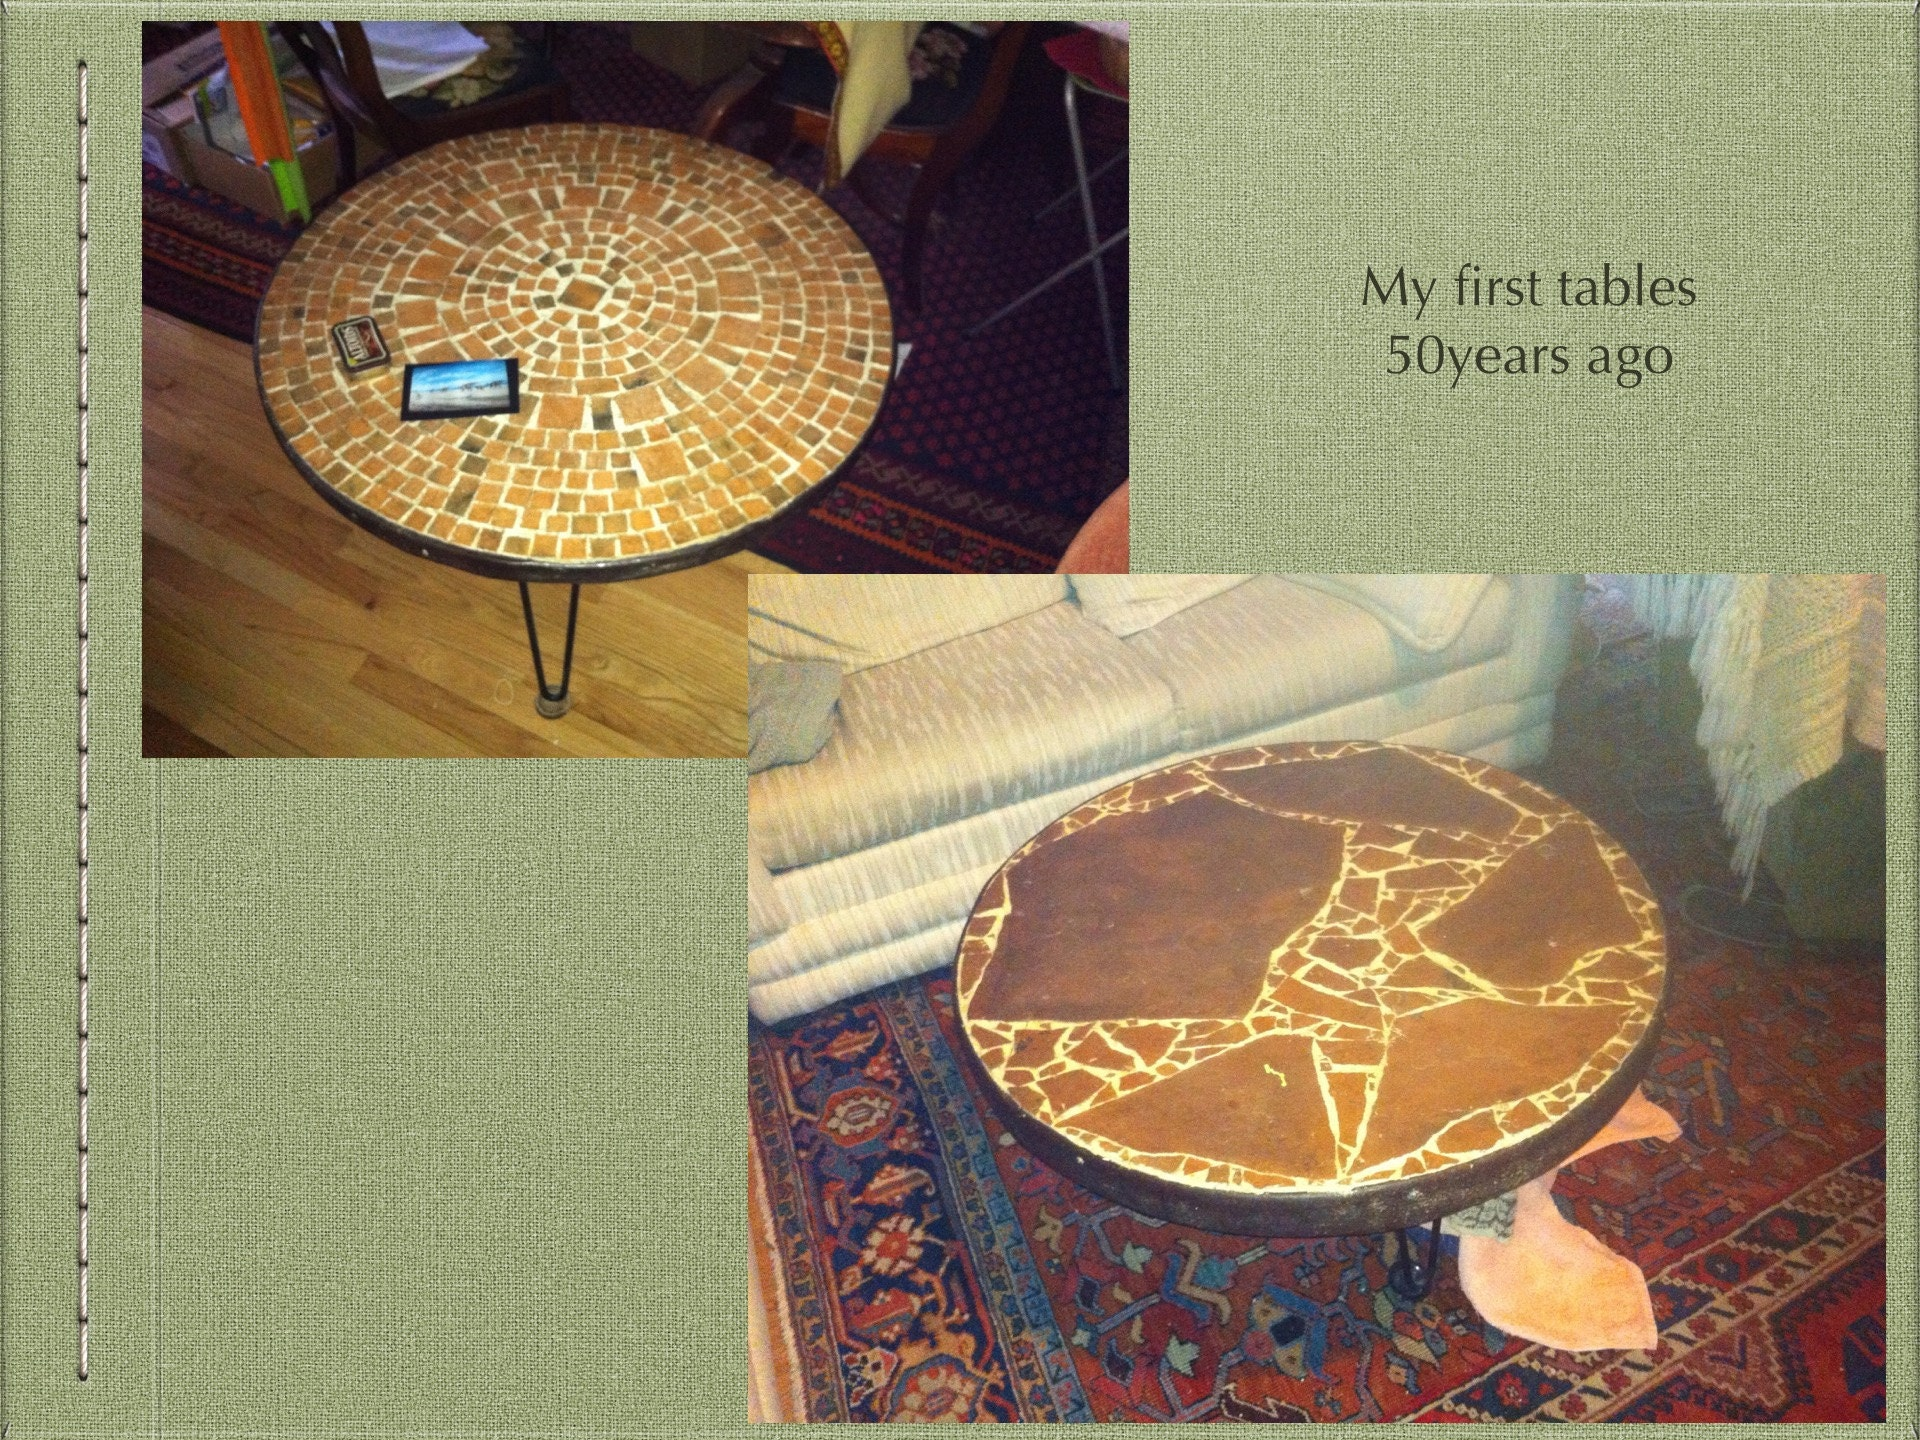 Tables I made while a student at the University of Colorado in the 60s.  We still use them in our Boulder home